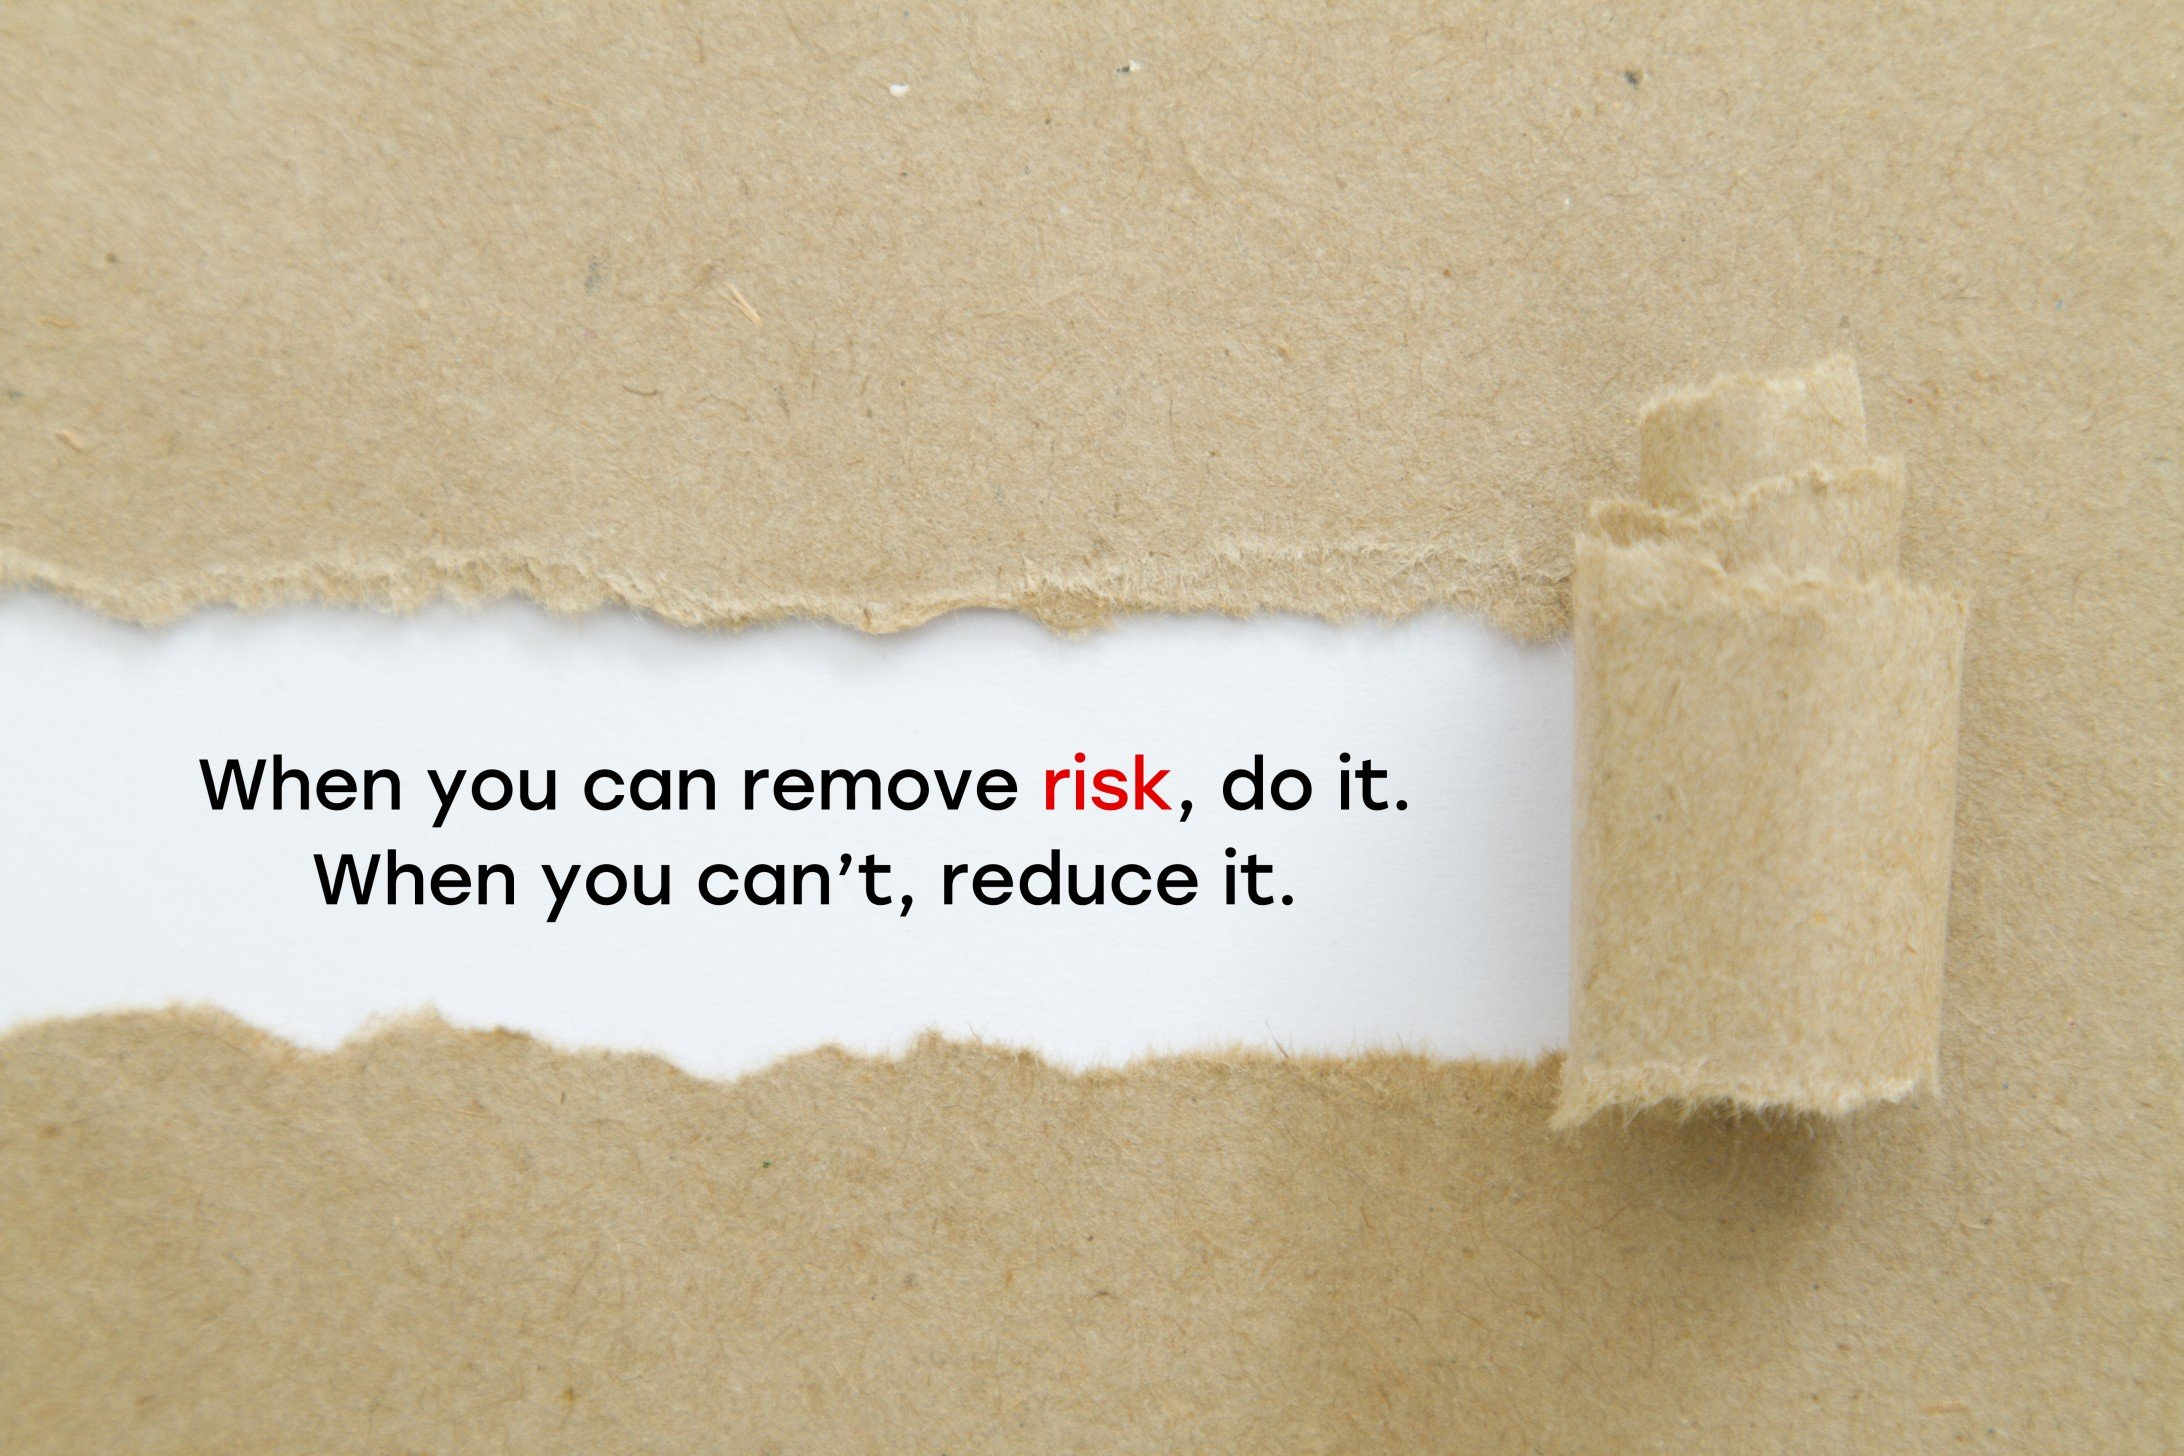 """When you can remove risk, do it. When you can't, reduce it. "" slogan written under torn paper. Risk management concept."